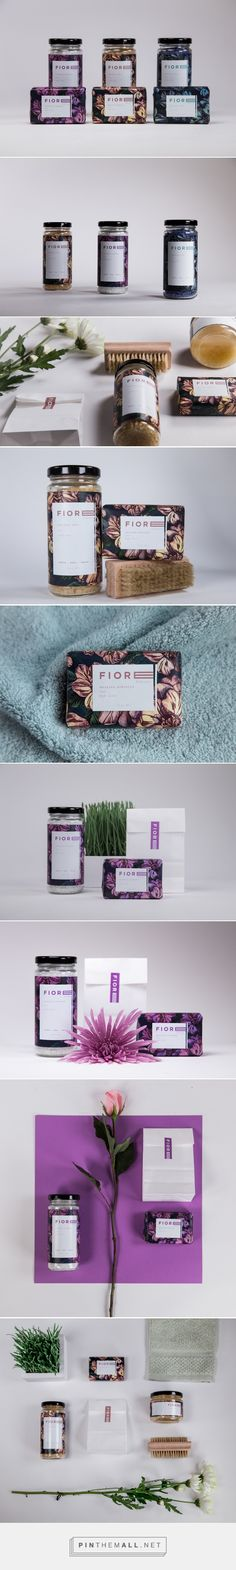 FIORE Skincare by Stephanie Falasche